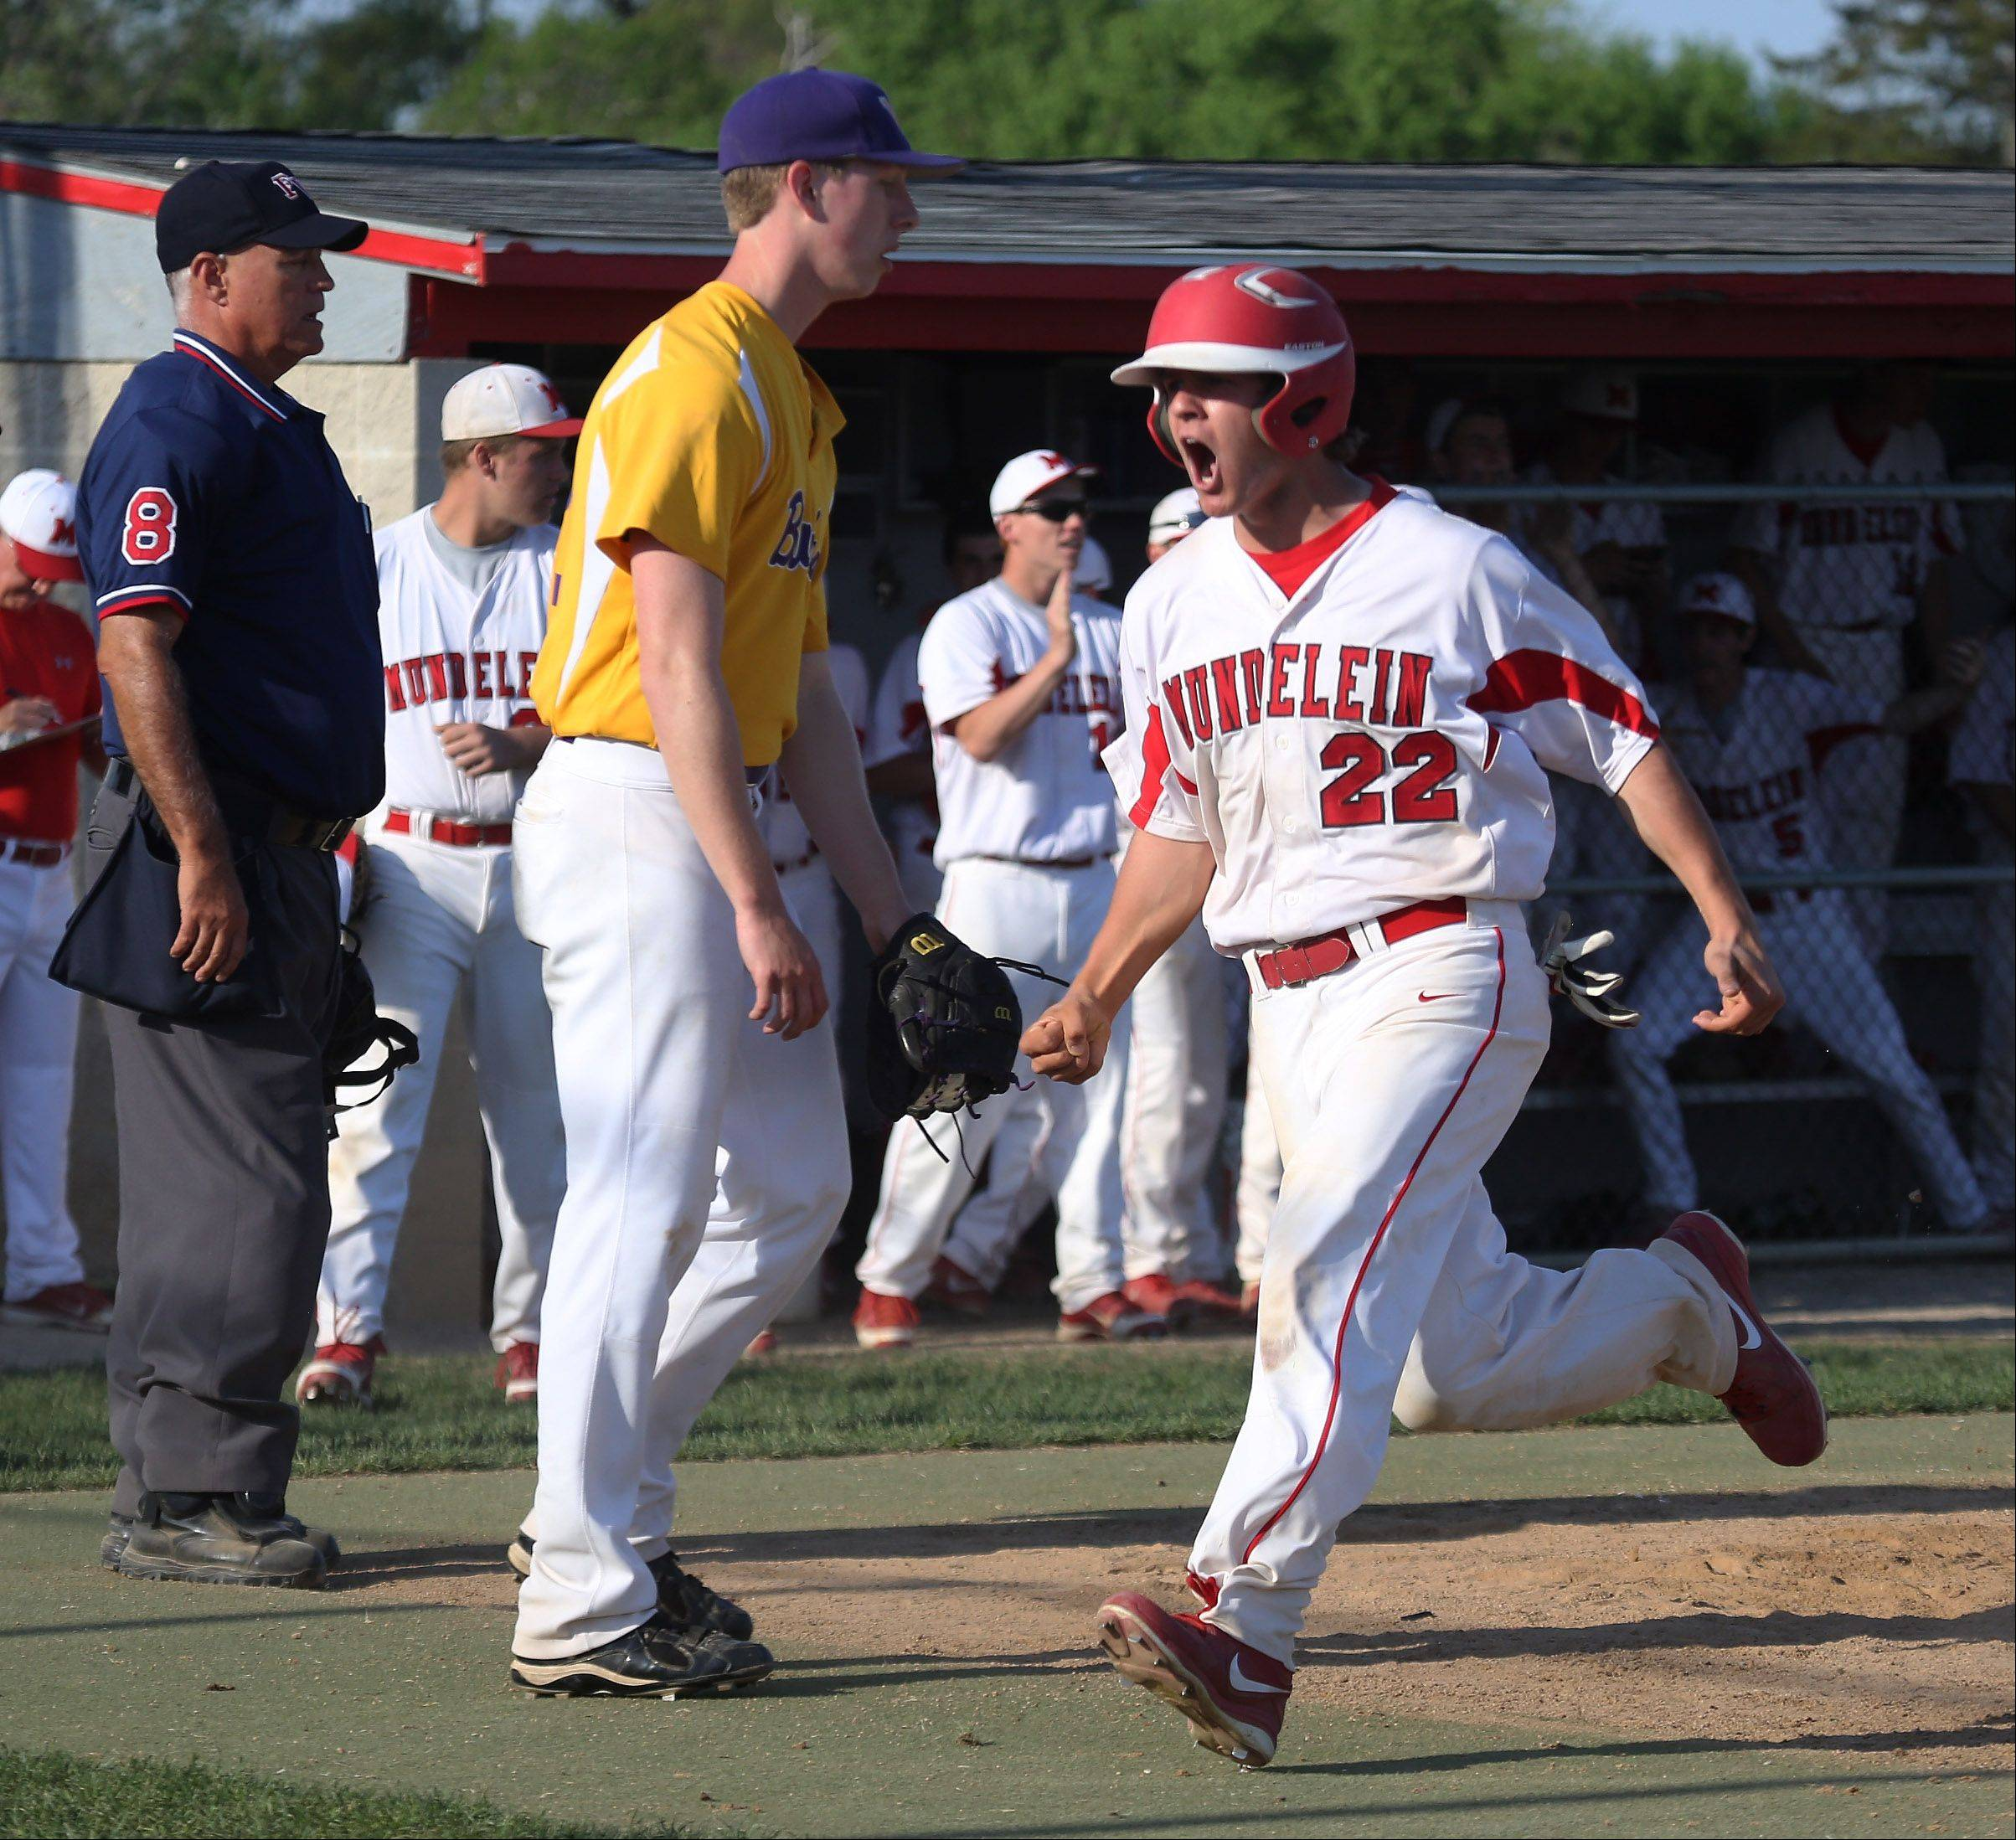 Mundelein runner Will Farmer cheers as he crosses home base in the fifth inning during the North Suburban Conference championship game against visiting Wauconda on Thursday.